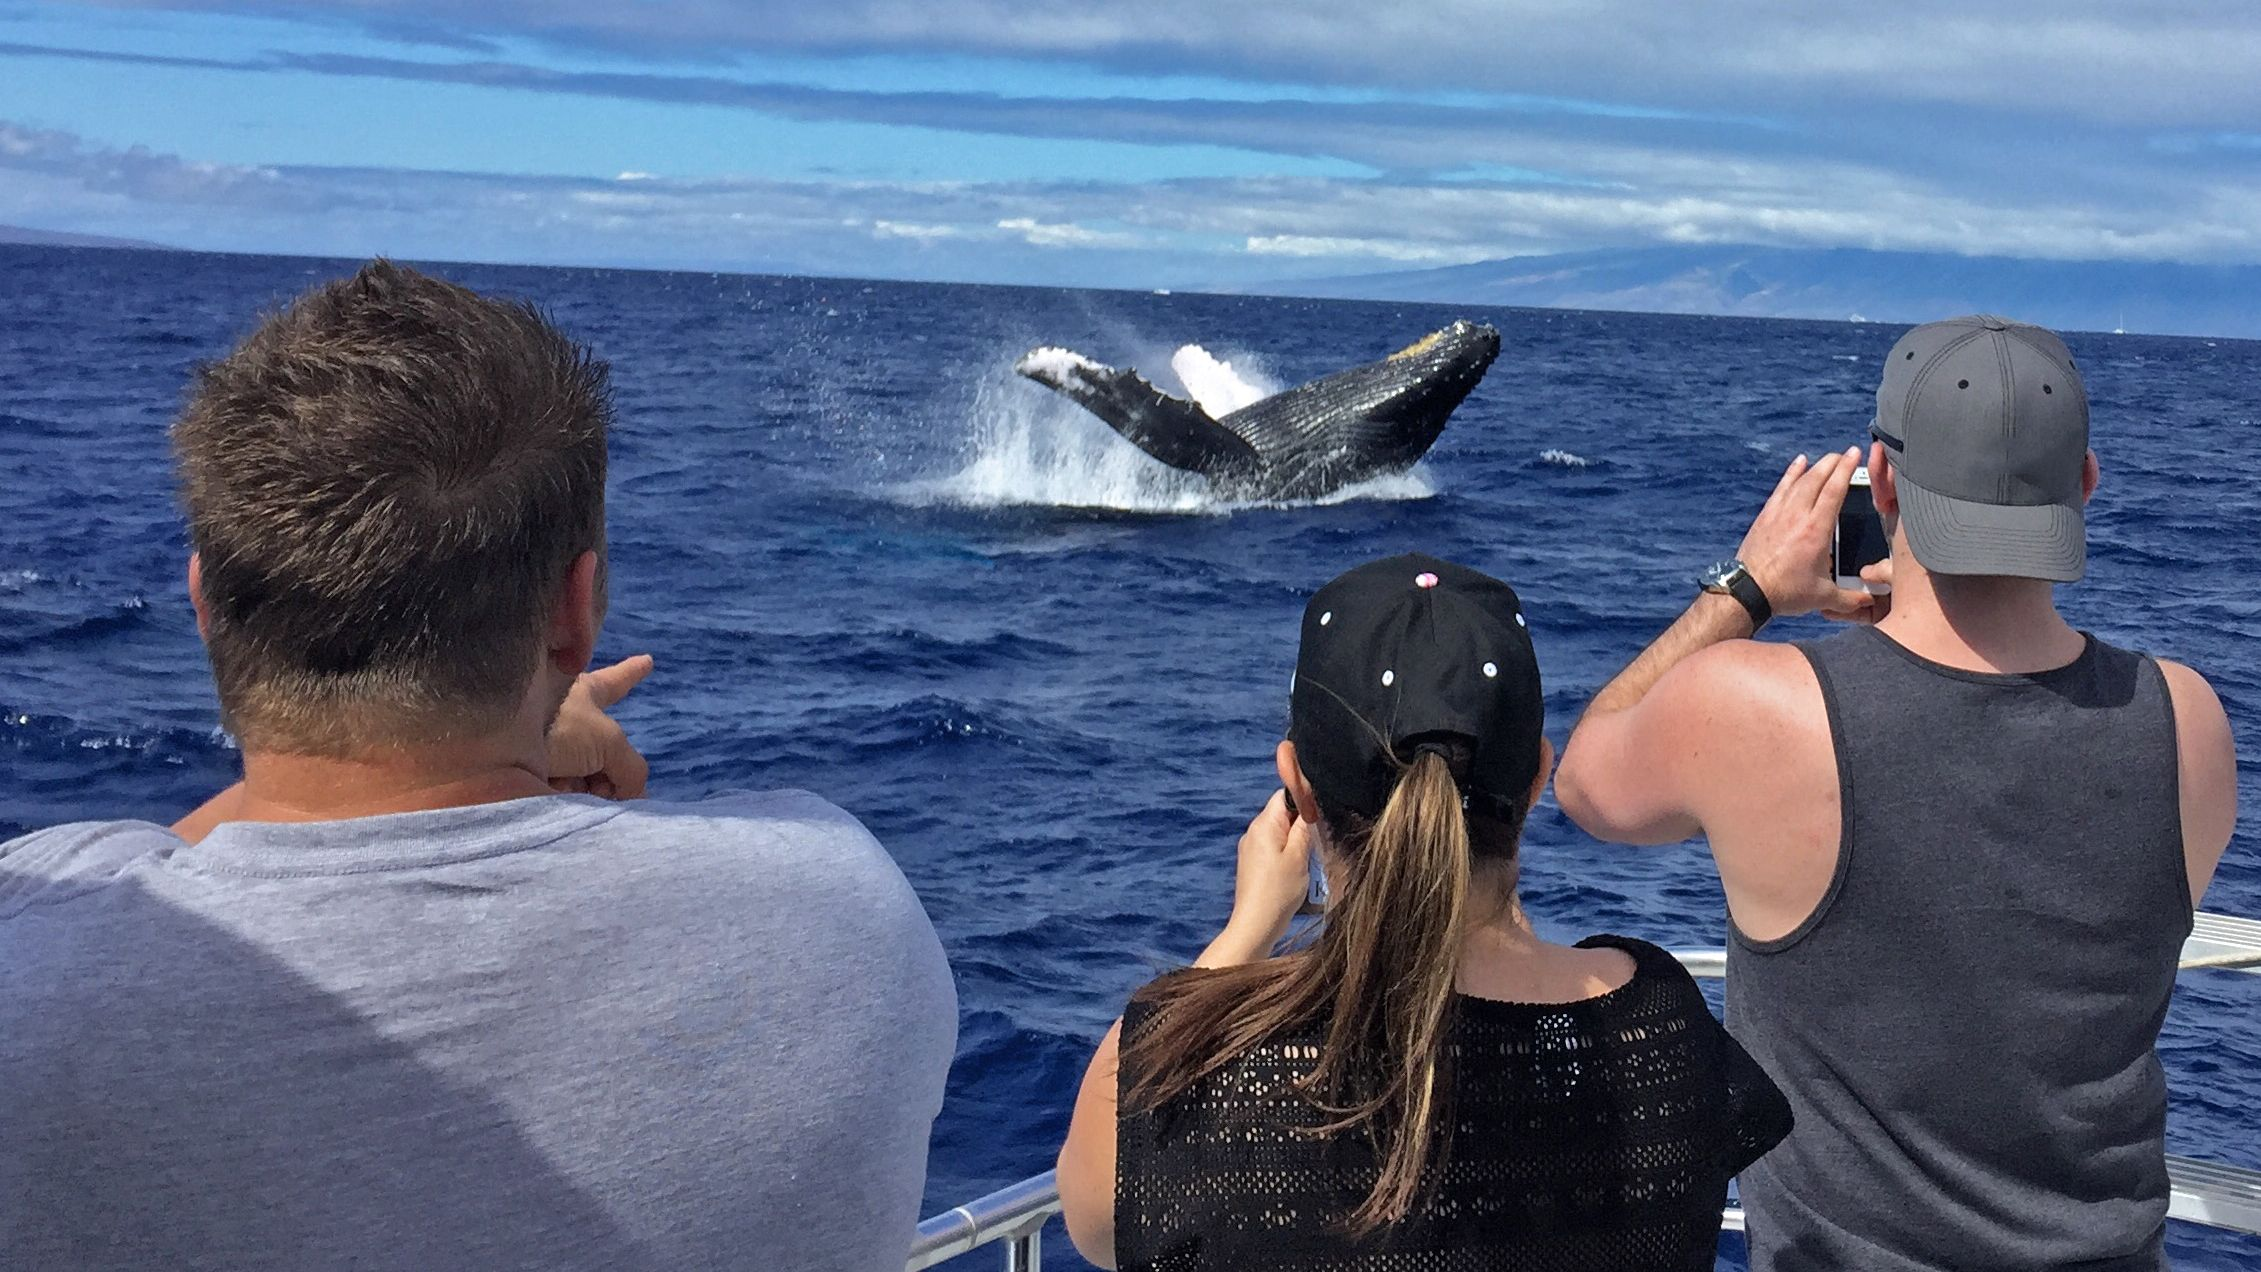 Group observing whale